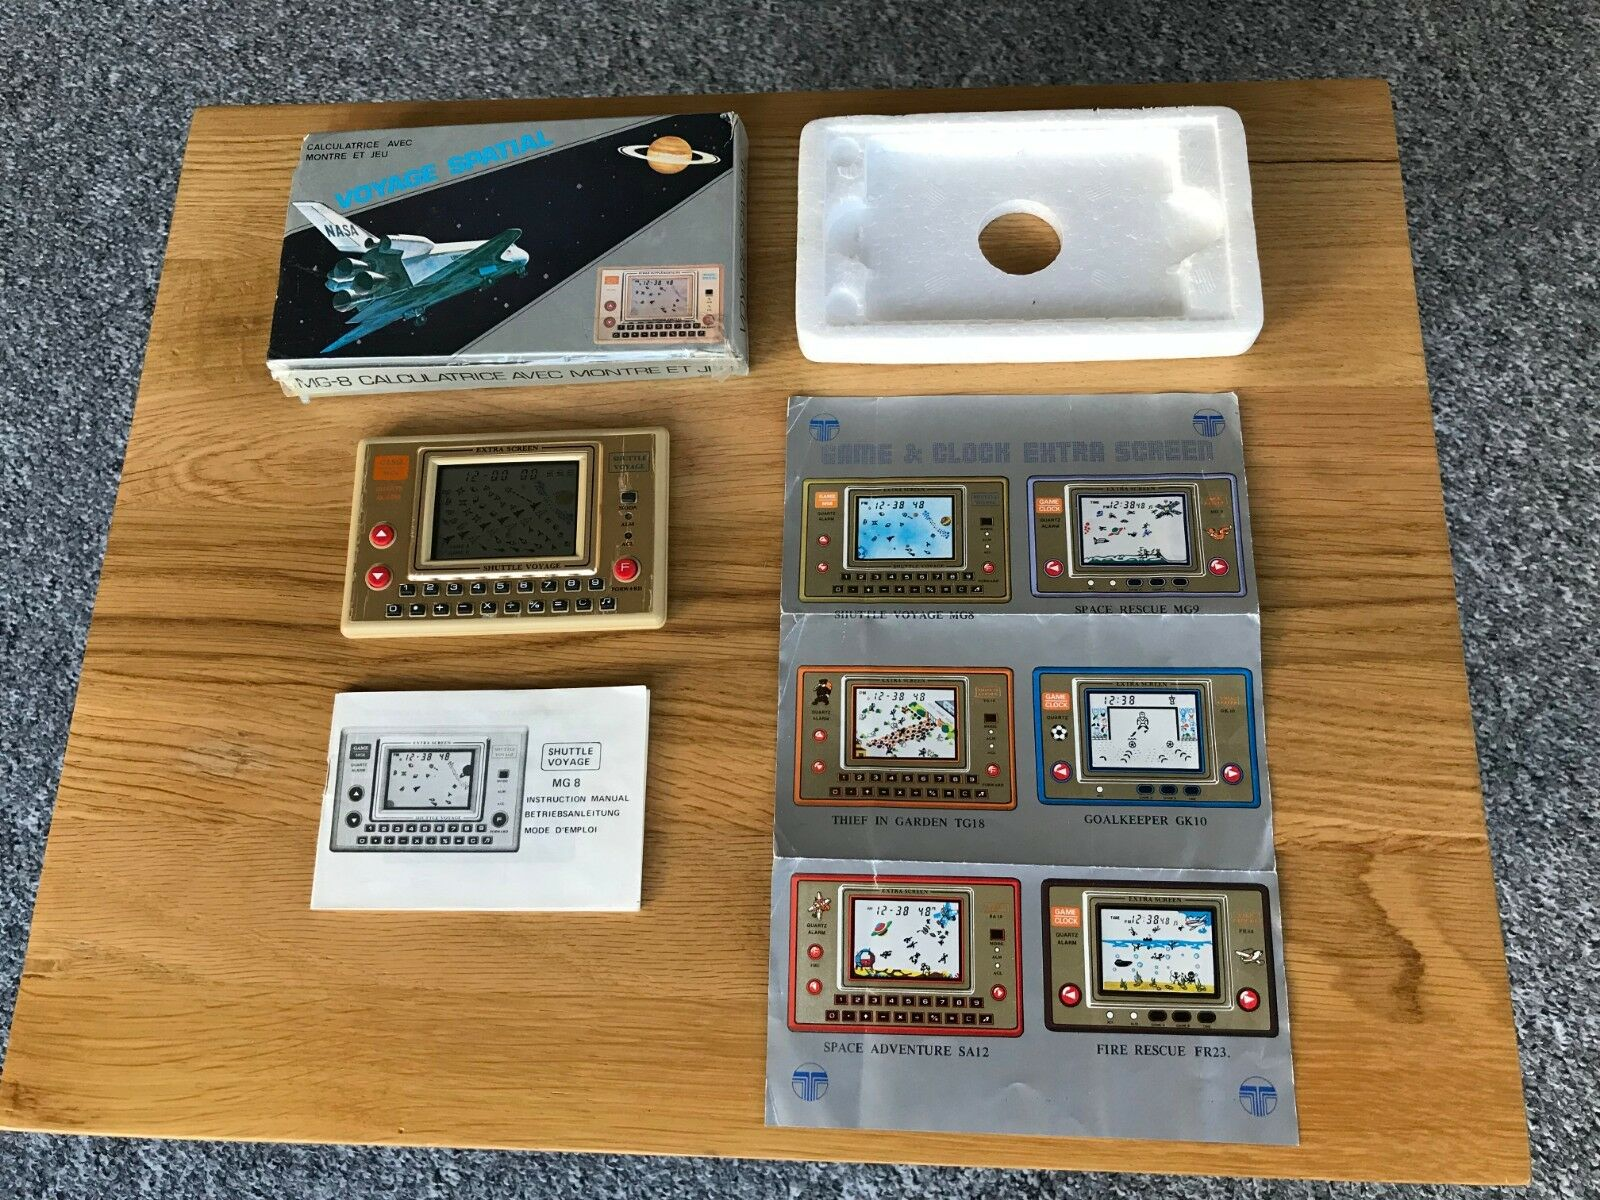 Very Rare Boxed Tronica Shuttle Voyage LCD Vintage 1983 LCD Electronic Game.